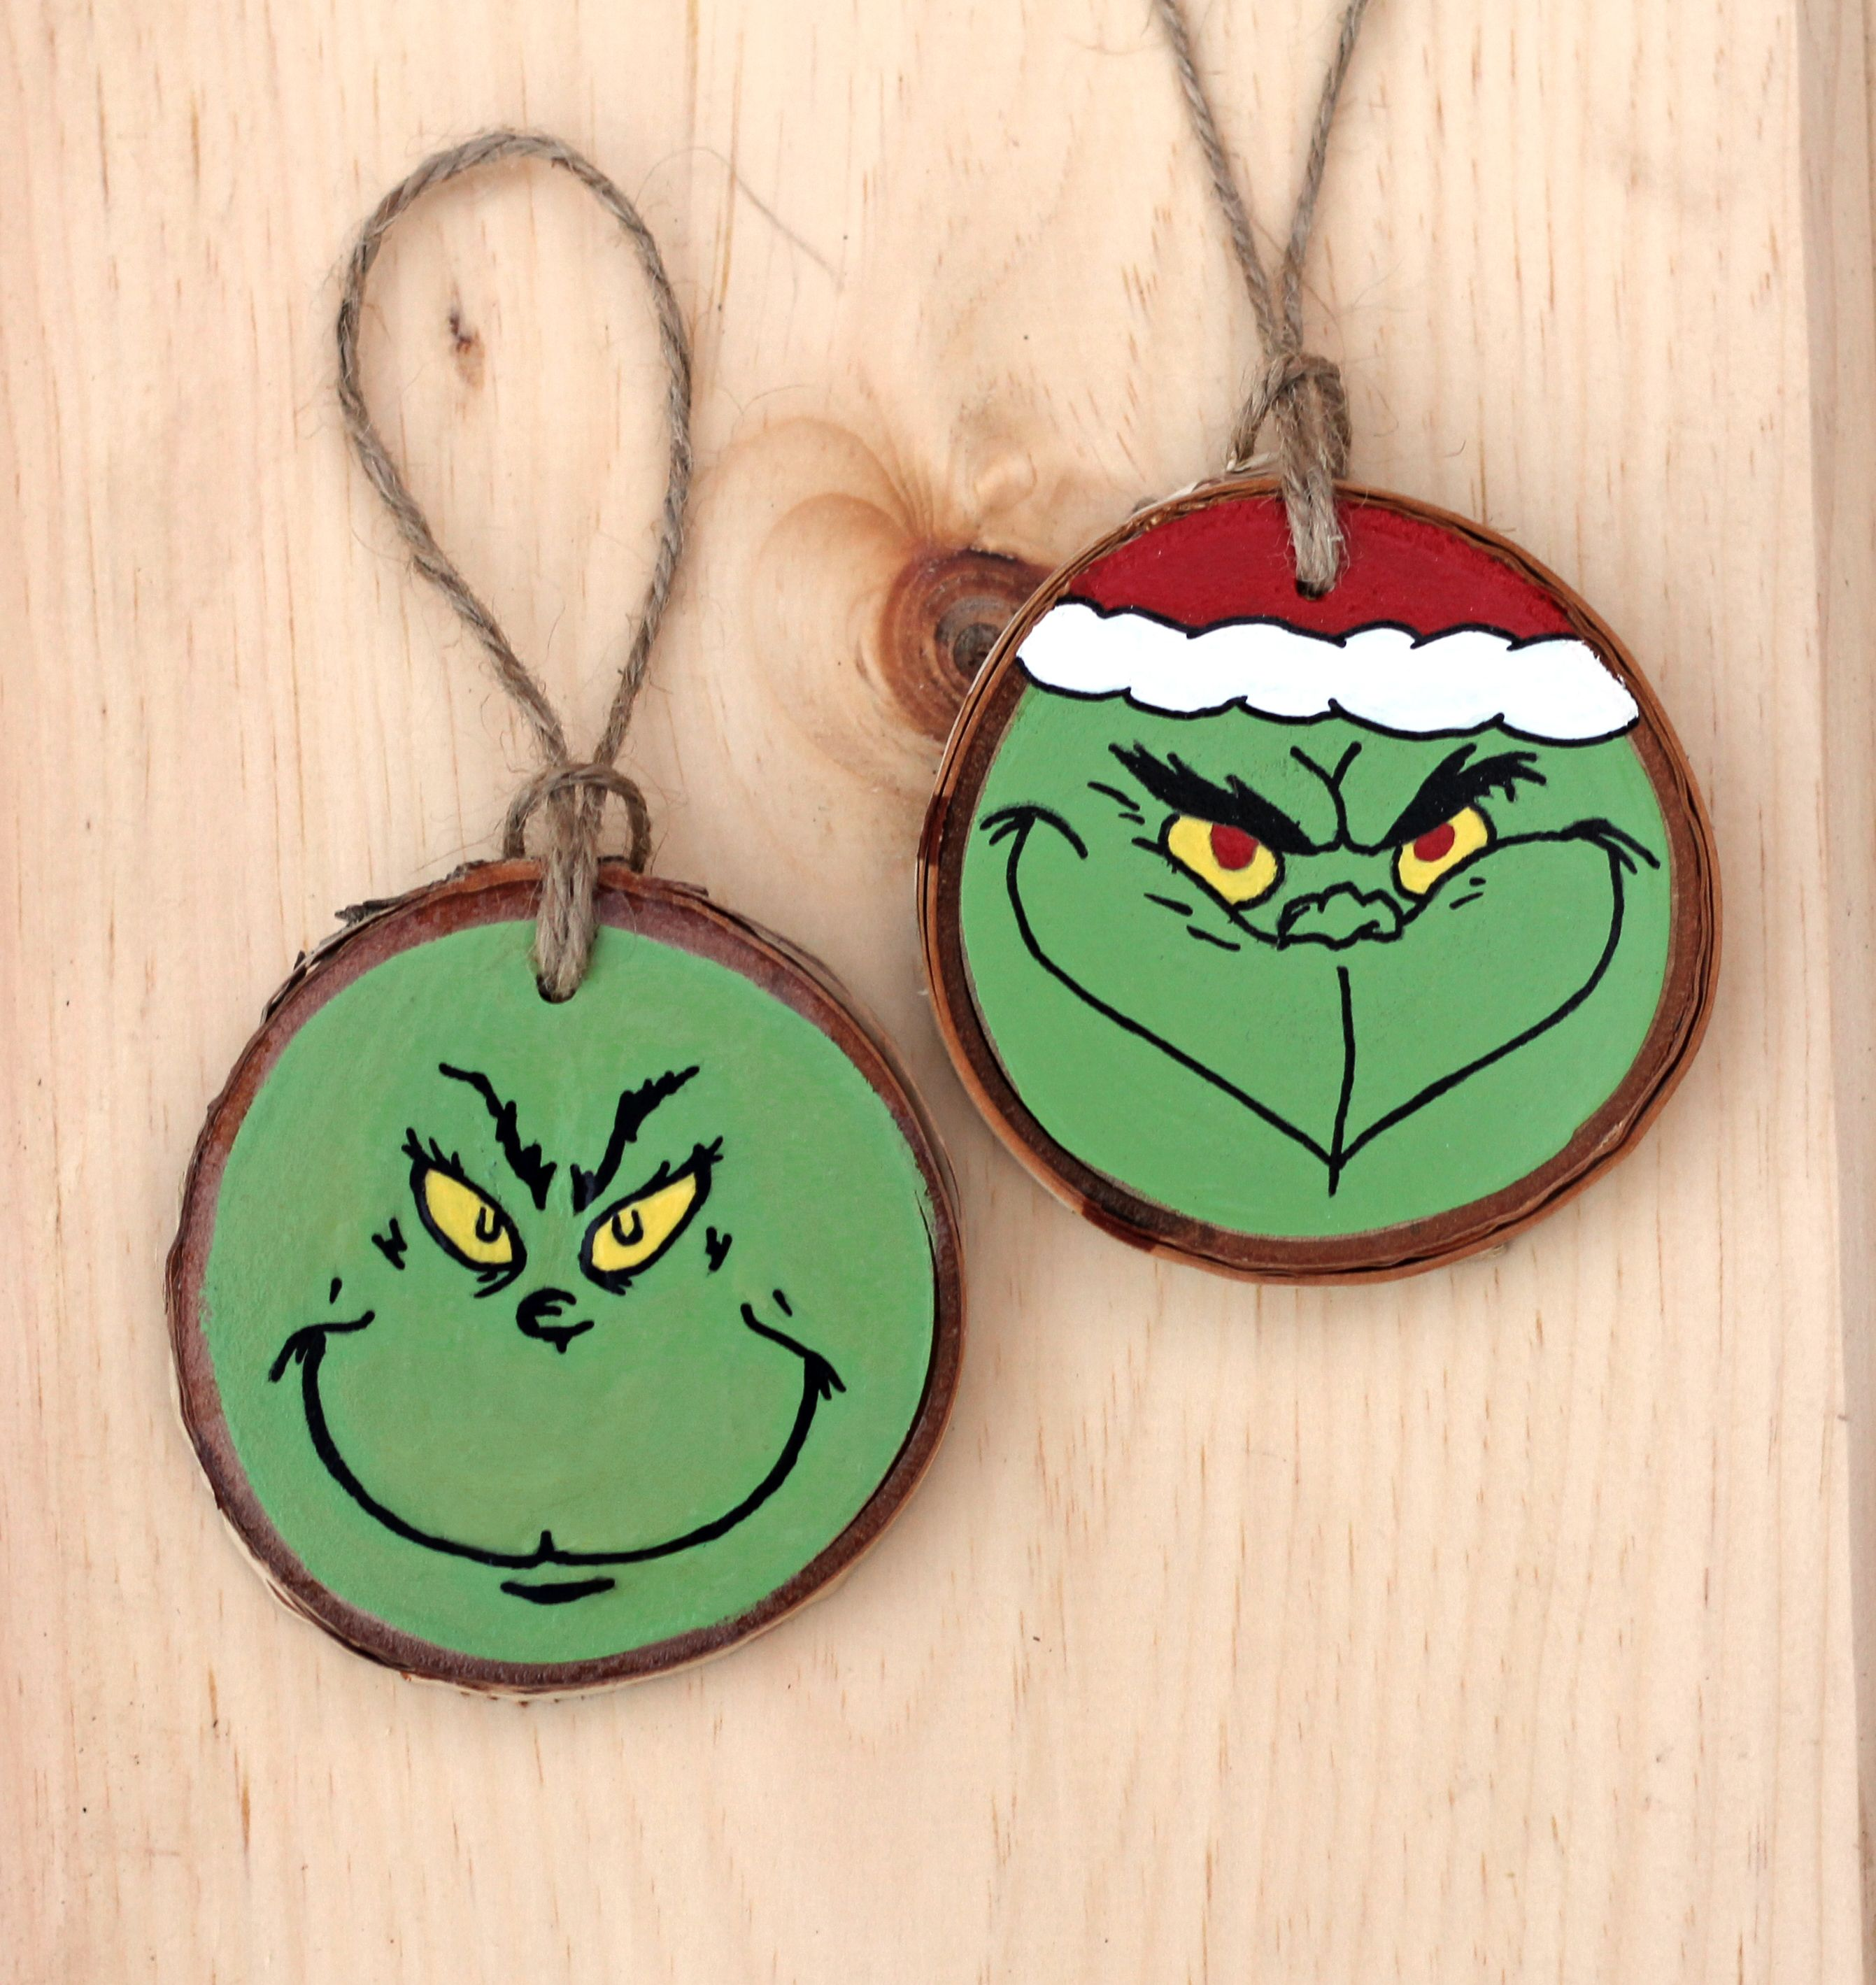 Grinch Ornament Wood Slice Ornament Wooden Christmas Etsy Christmas Ornament Crafts Wood Christmas Ornaments Christmas Wood Crafts